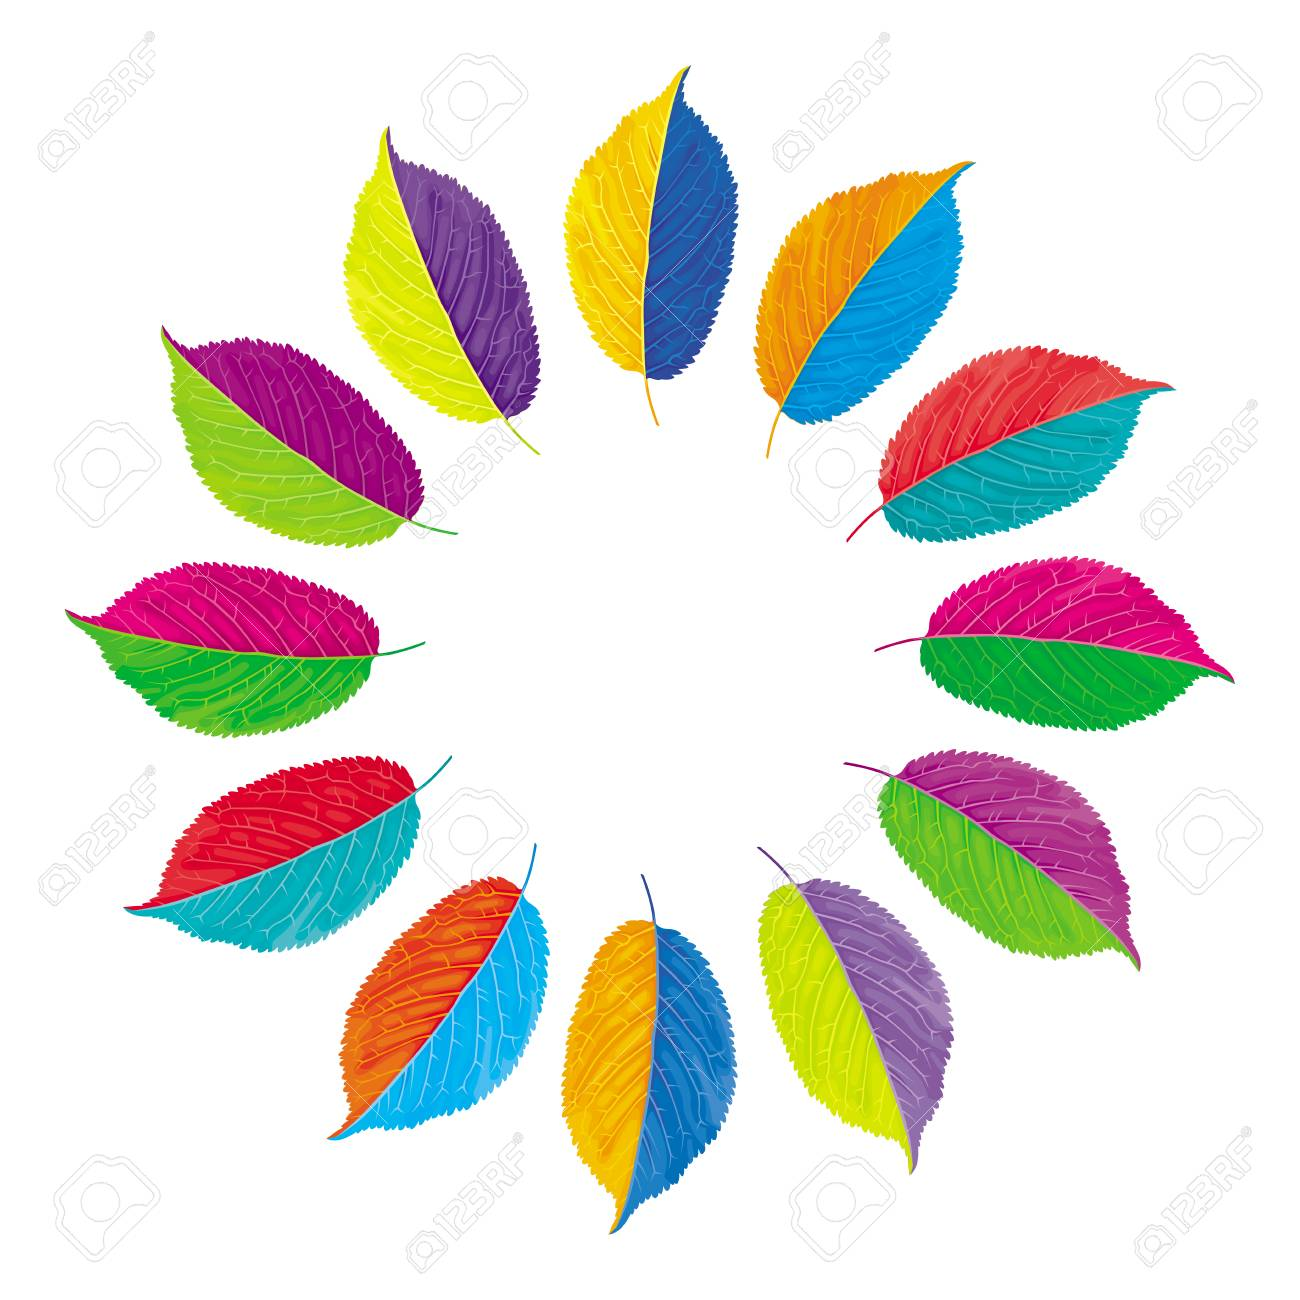 Vector Color Wheel With Opposite Colors Made From Multi Colored